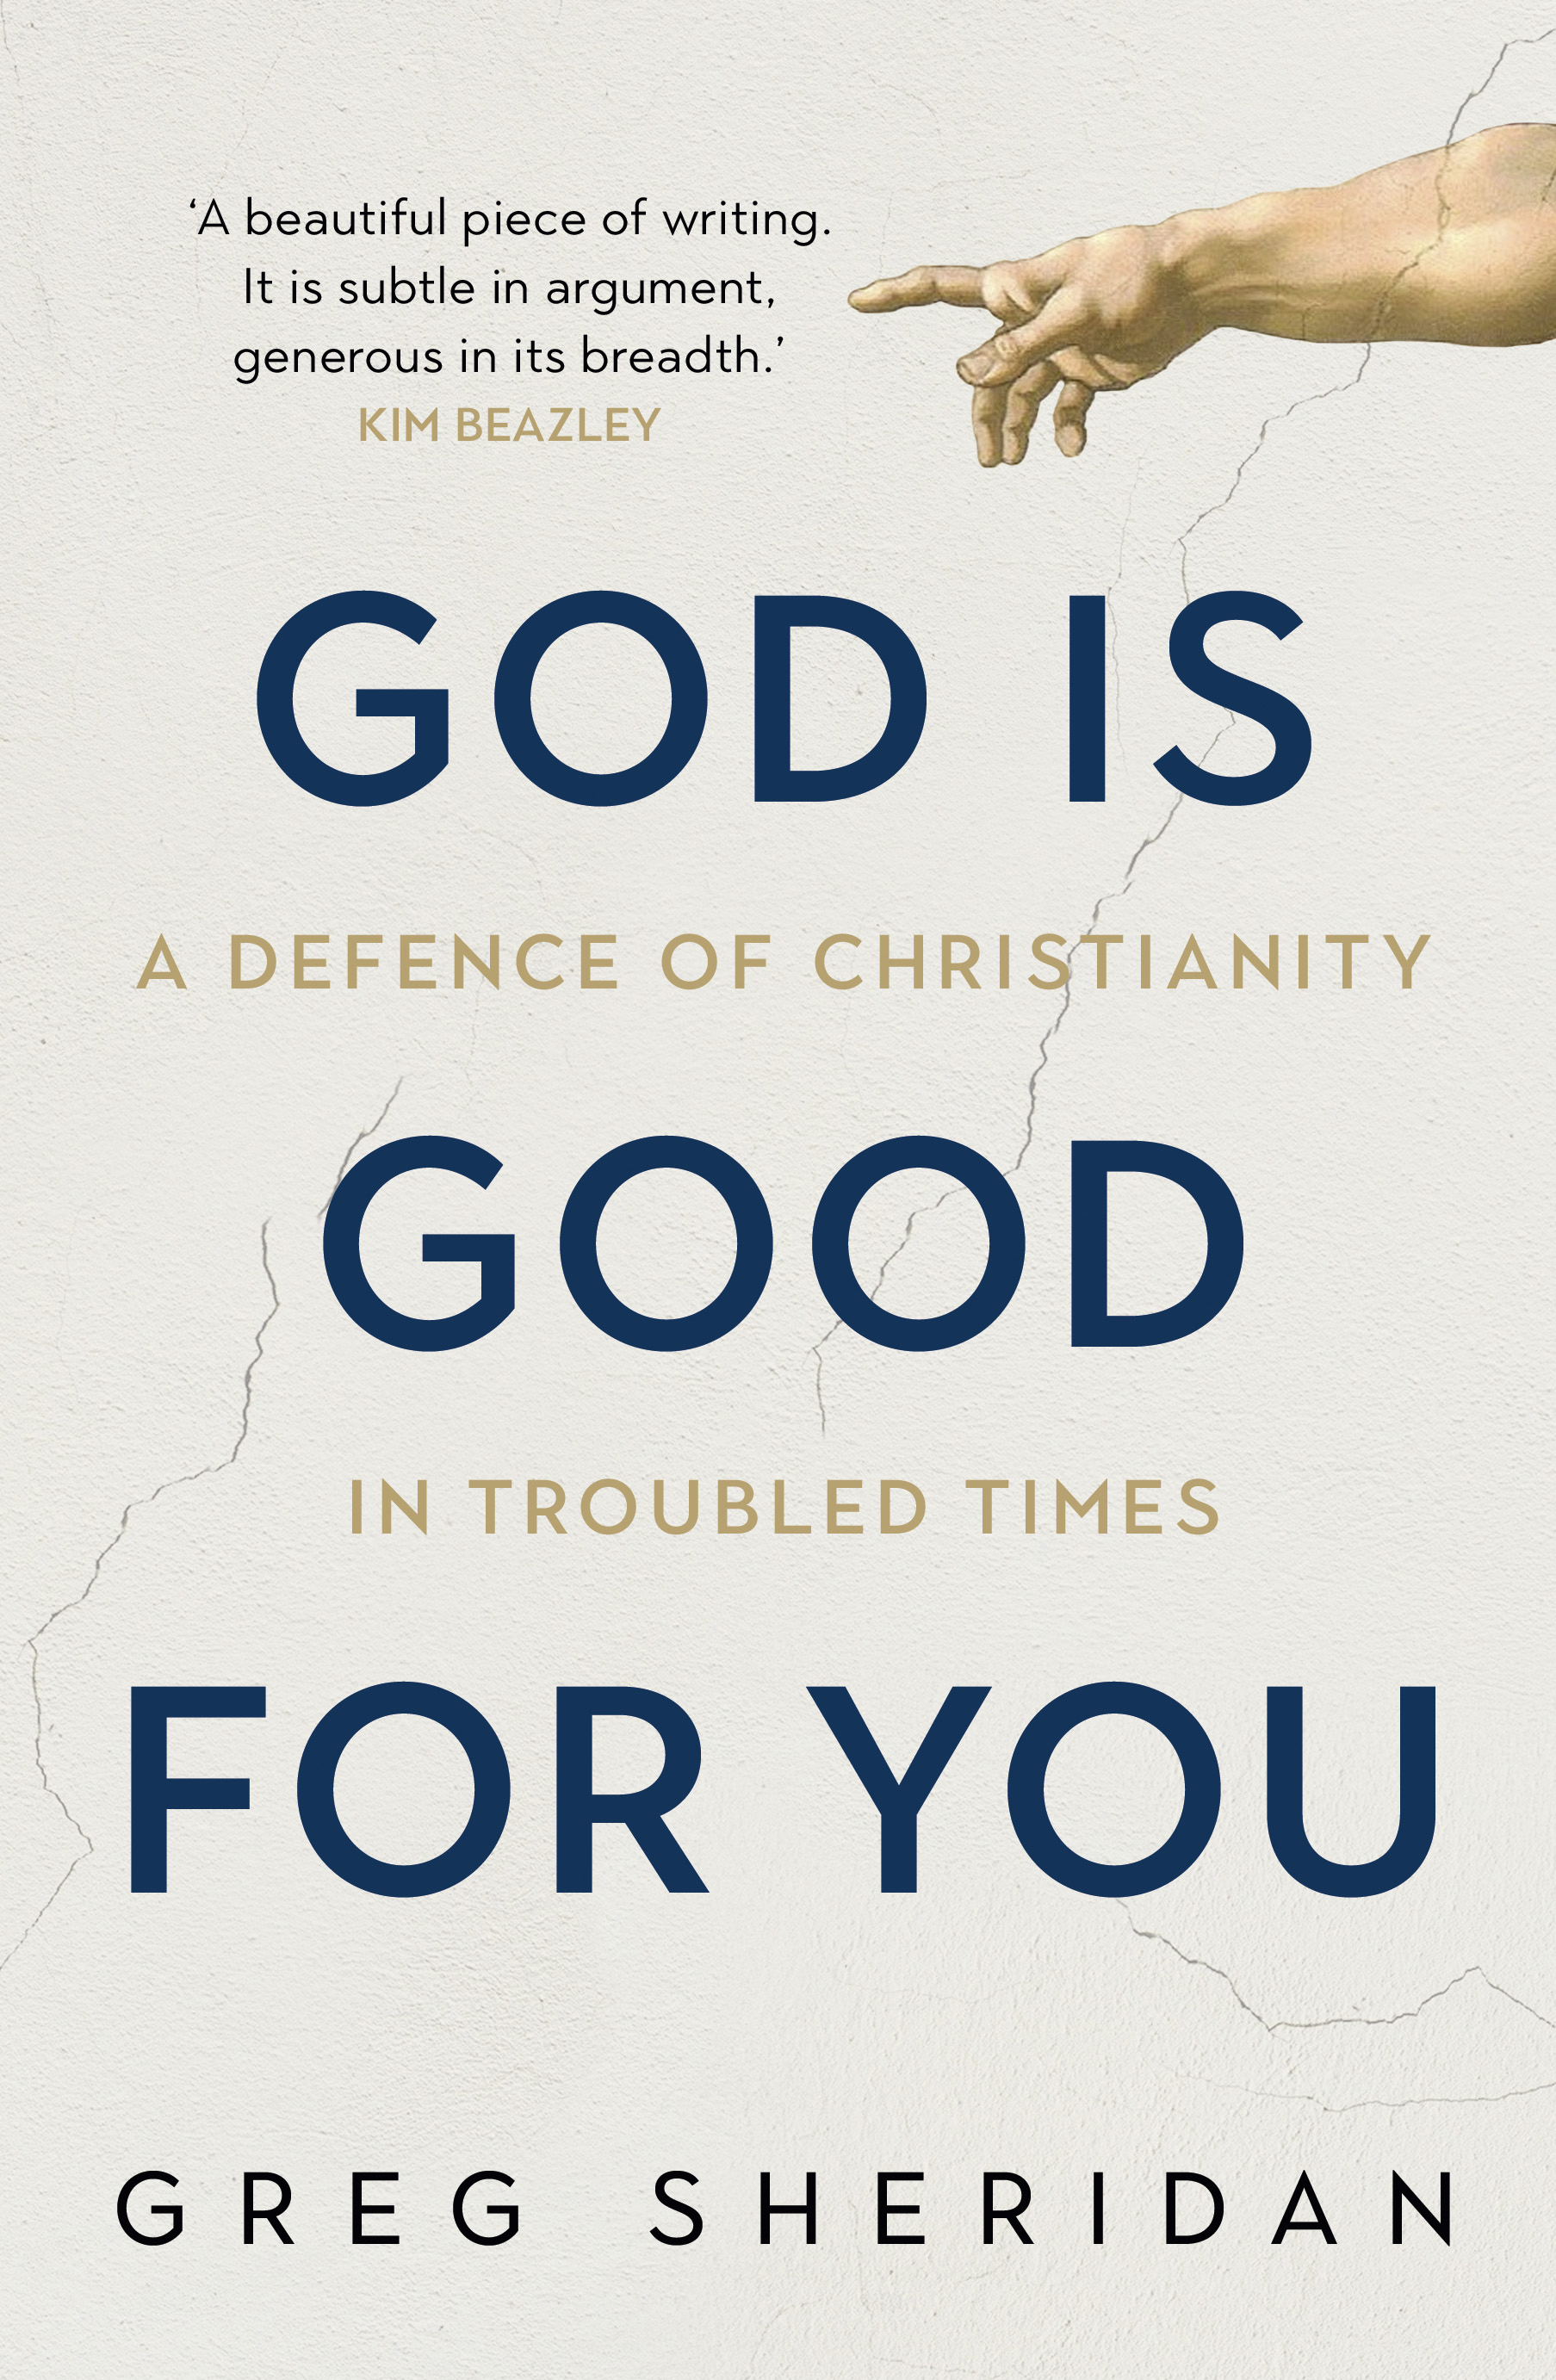 God is good for you greg sheridan 9781760632601 - Download god is good all the time ...